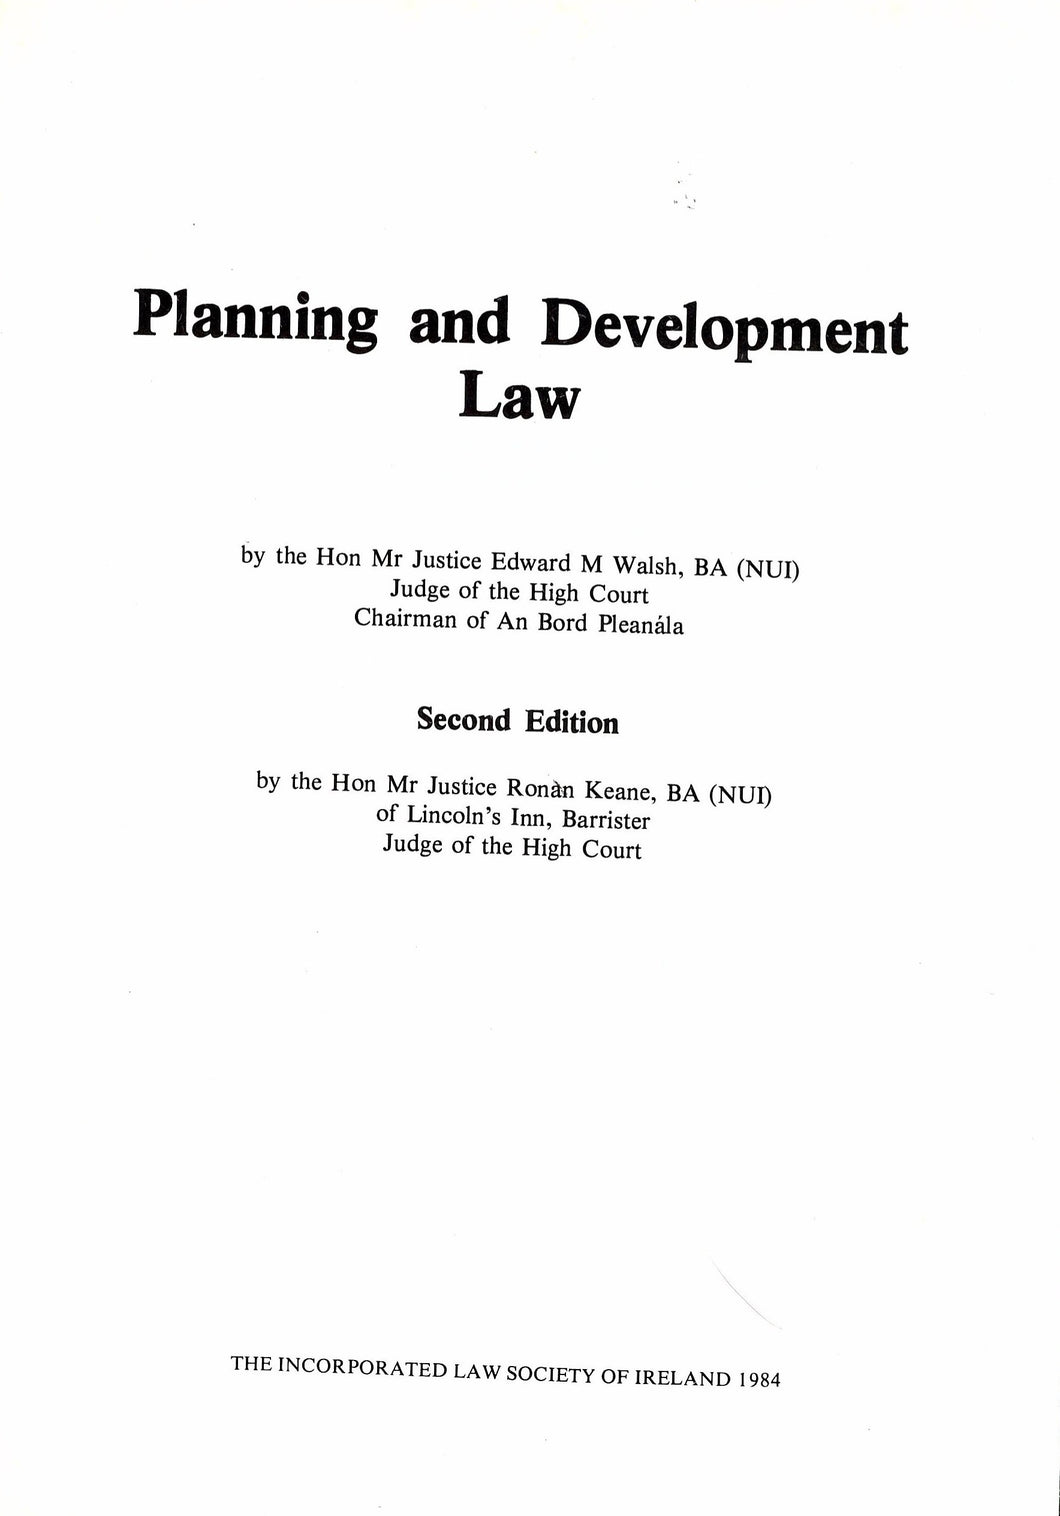 Planning and Development Law: Second Edition